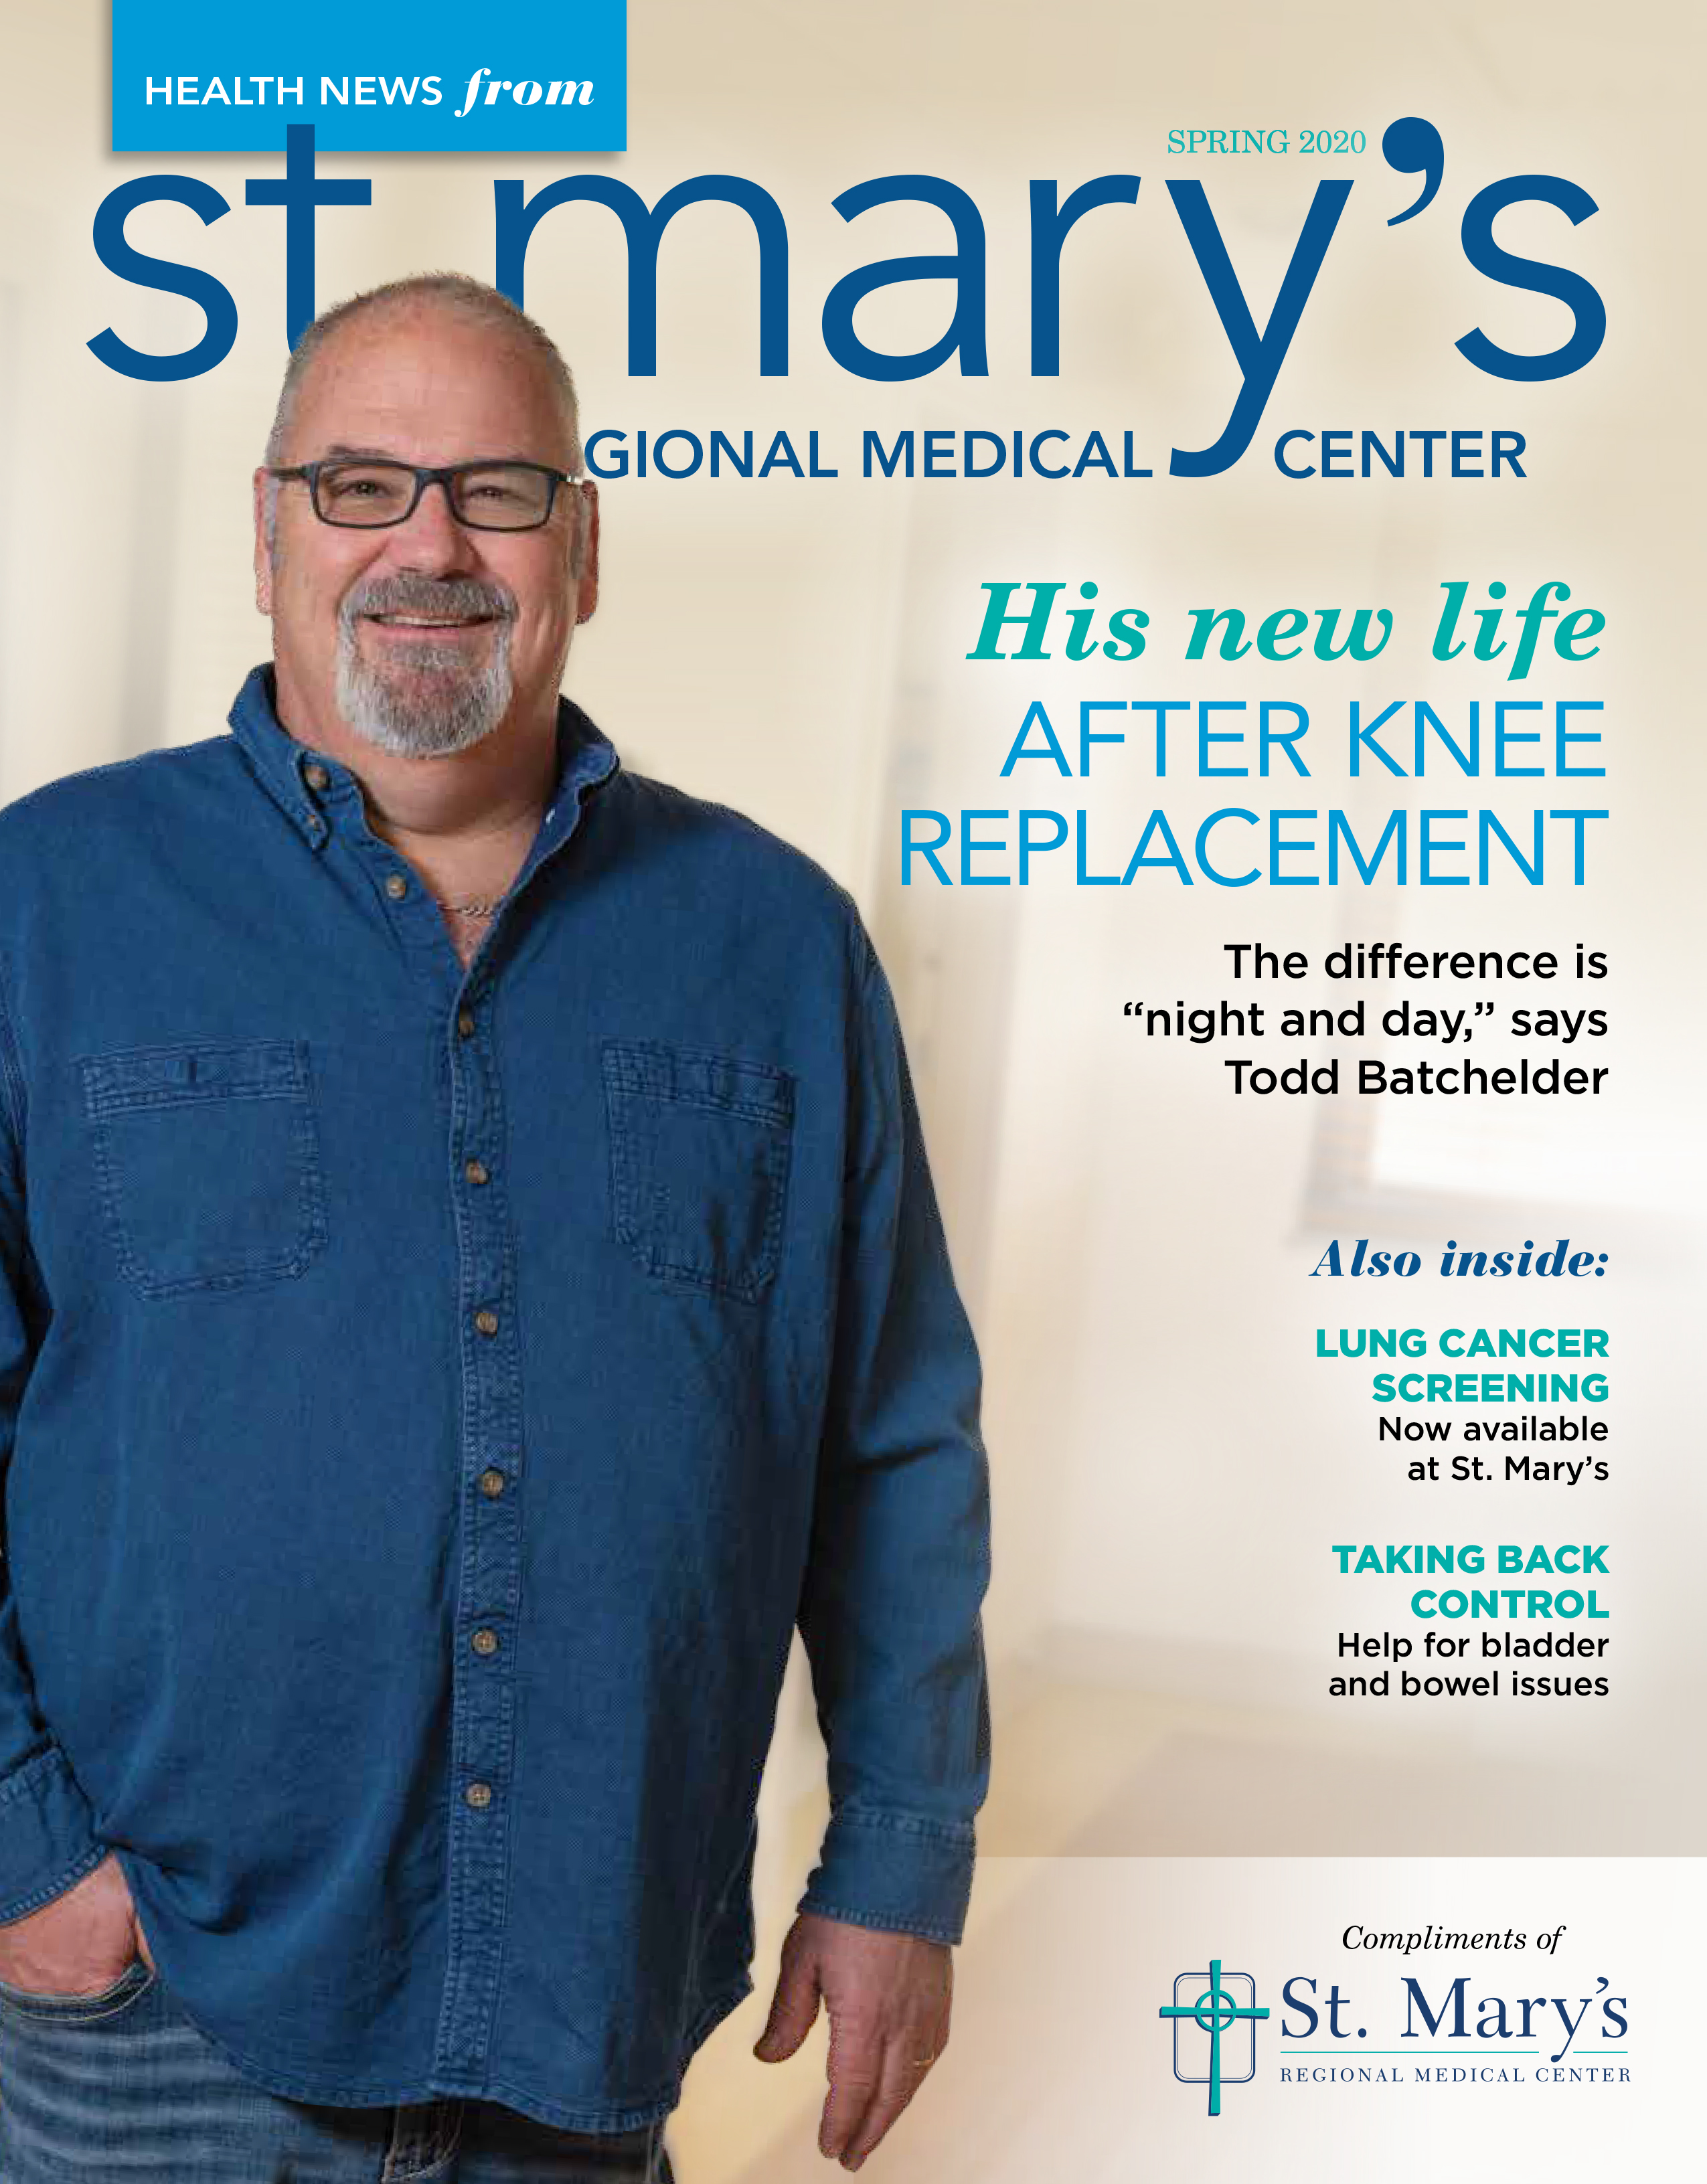 St. Mary's Health News Magazine Cover Spring 2020